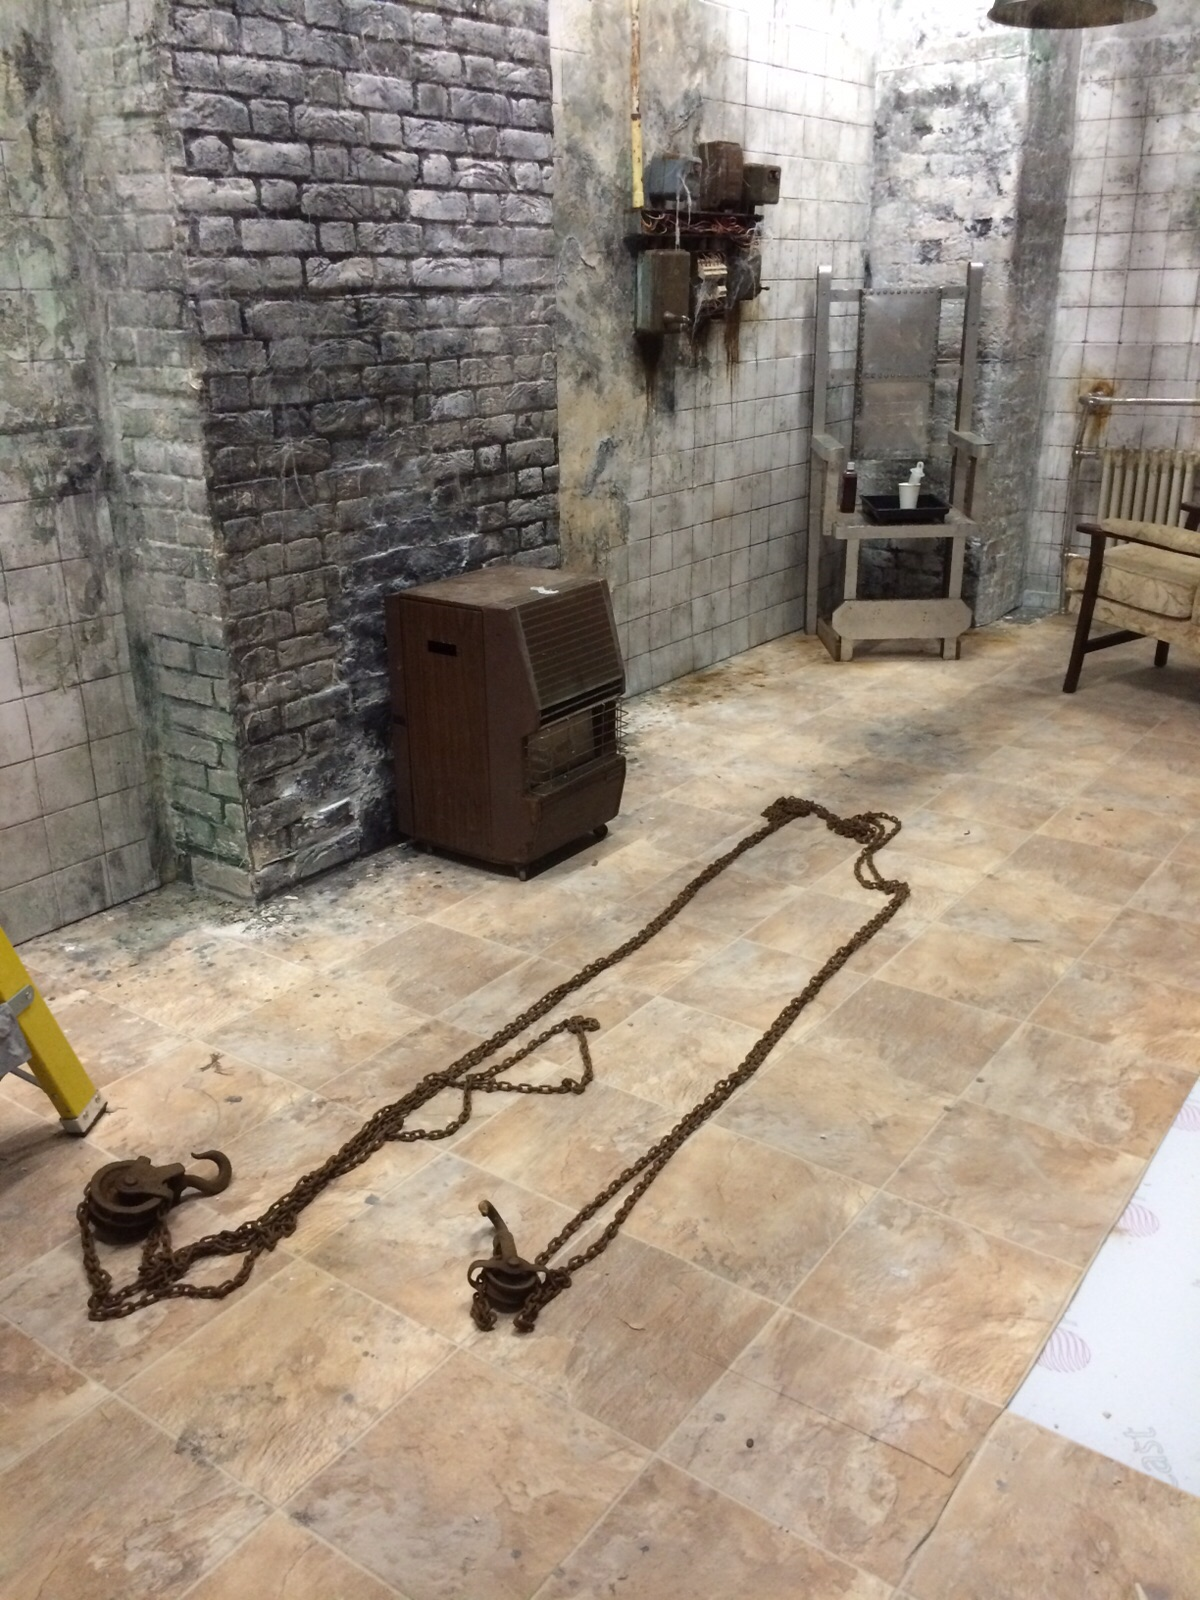 Rusted chains on the floor of horror room.